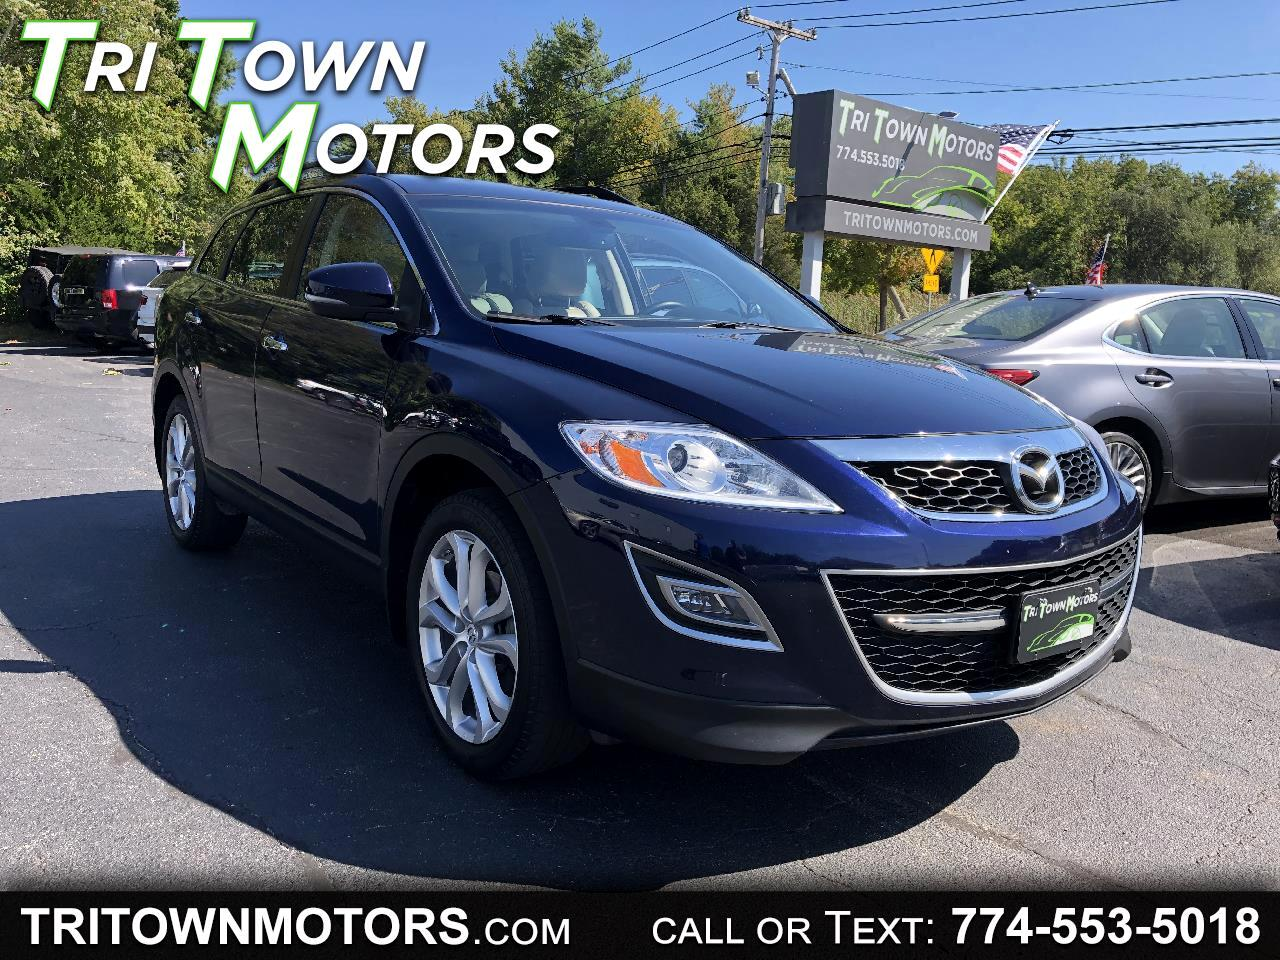 2011 Mazda CX-9 Grand Touring AWD